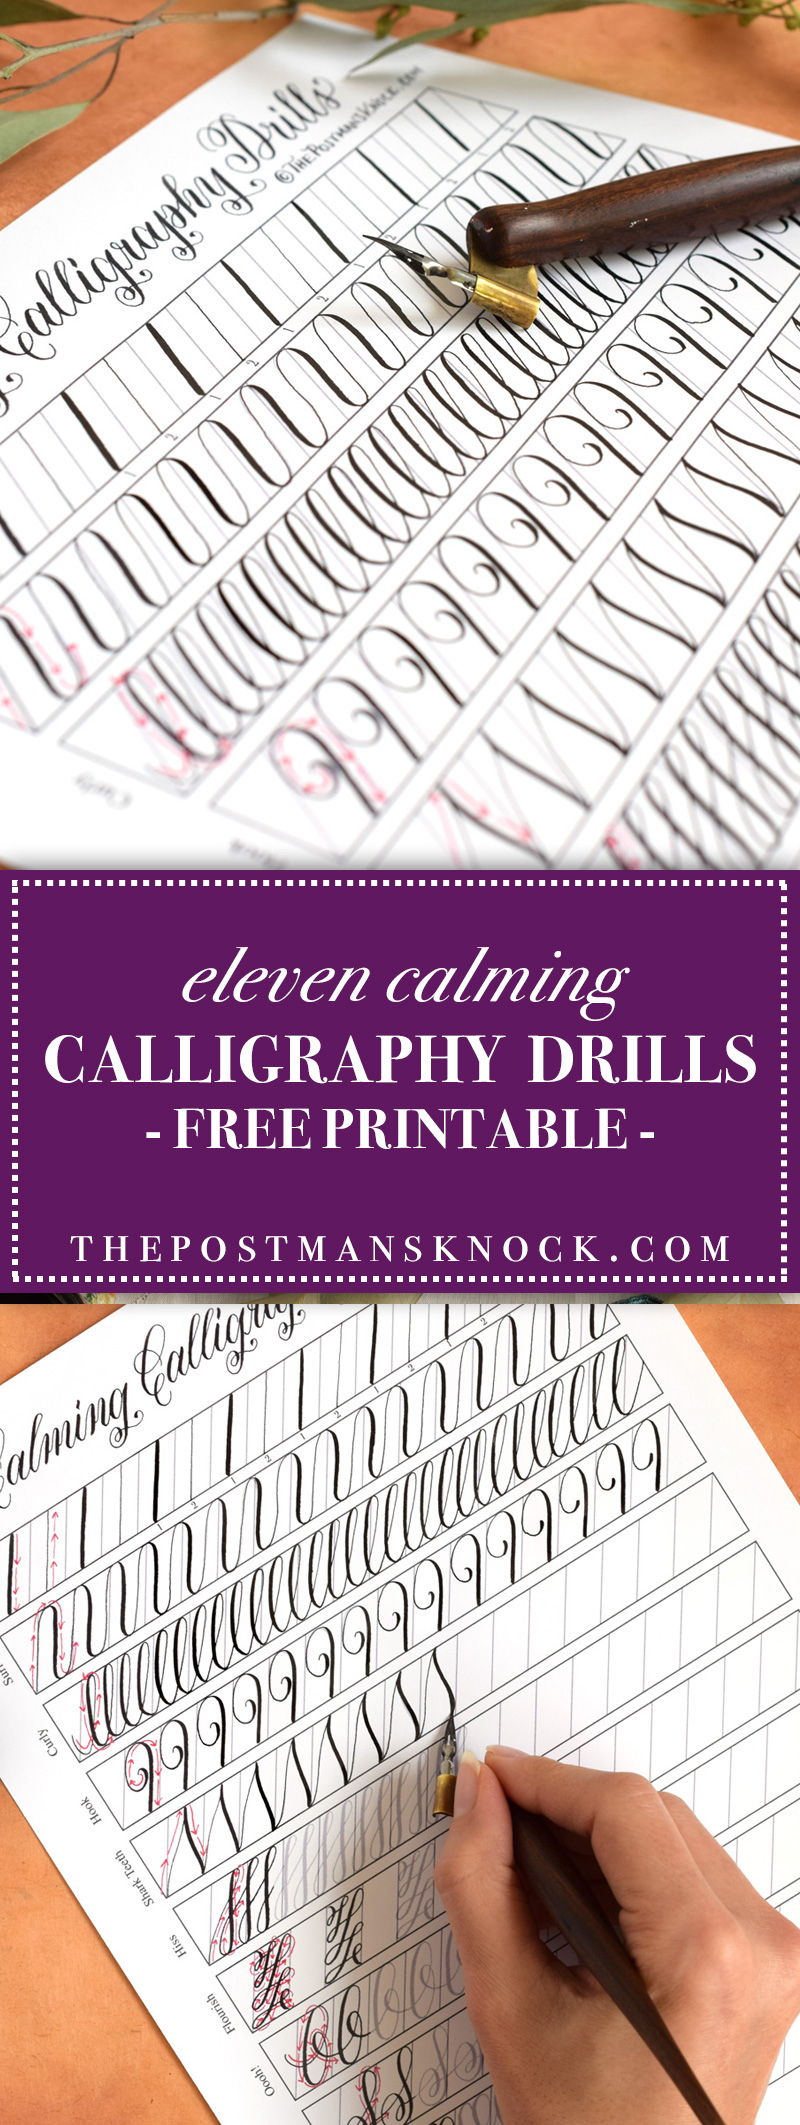 Calming calligraphy drills printable free download